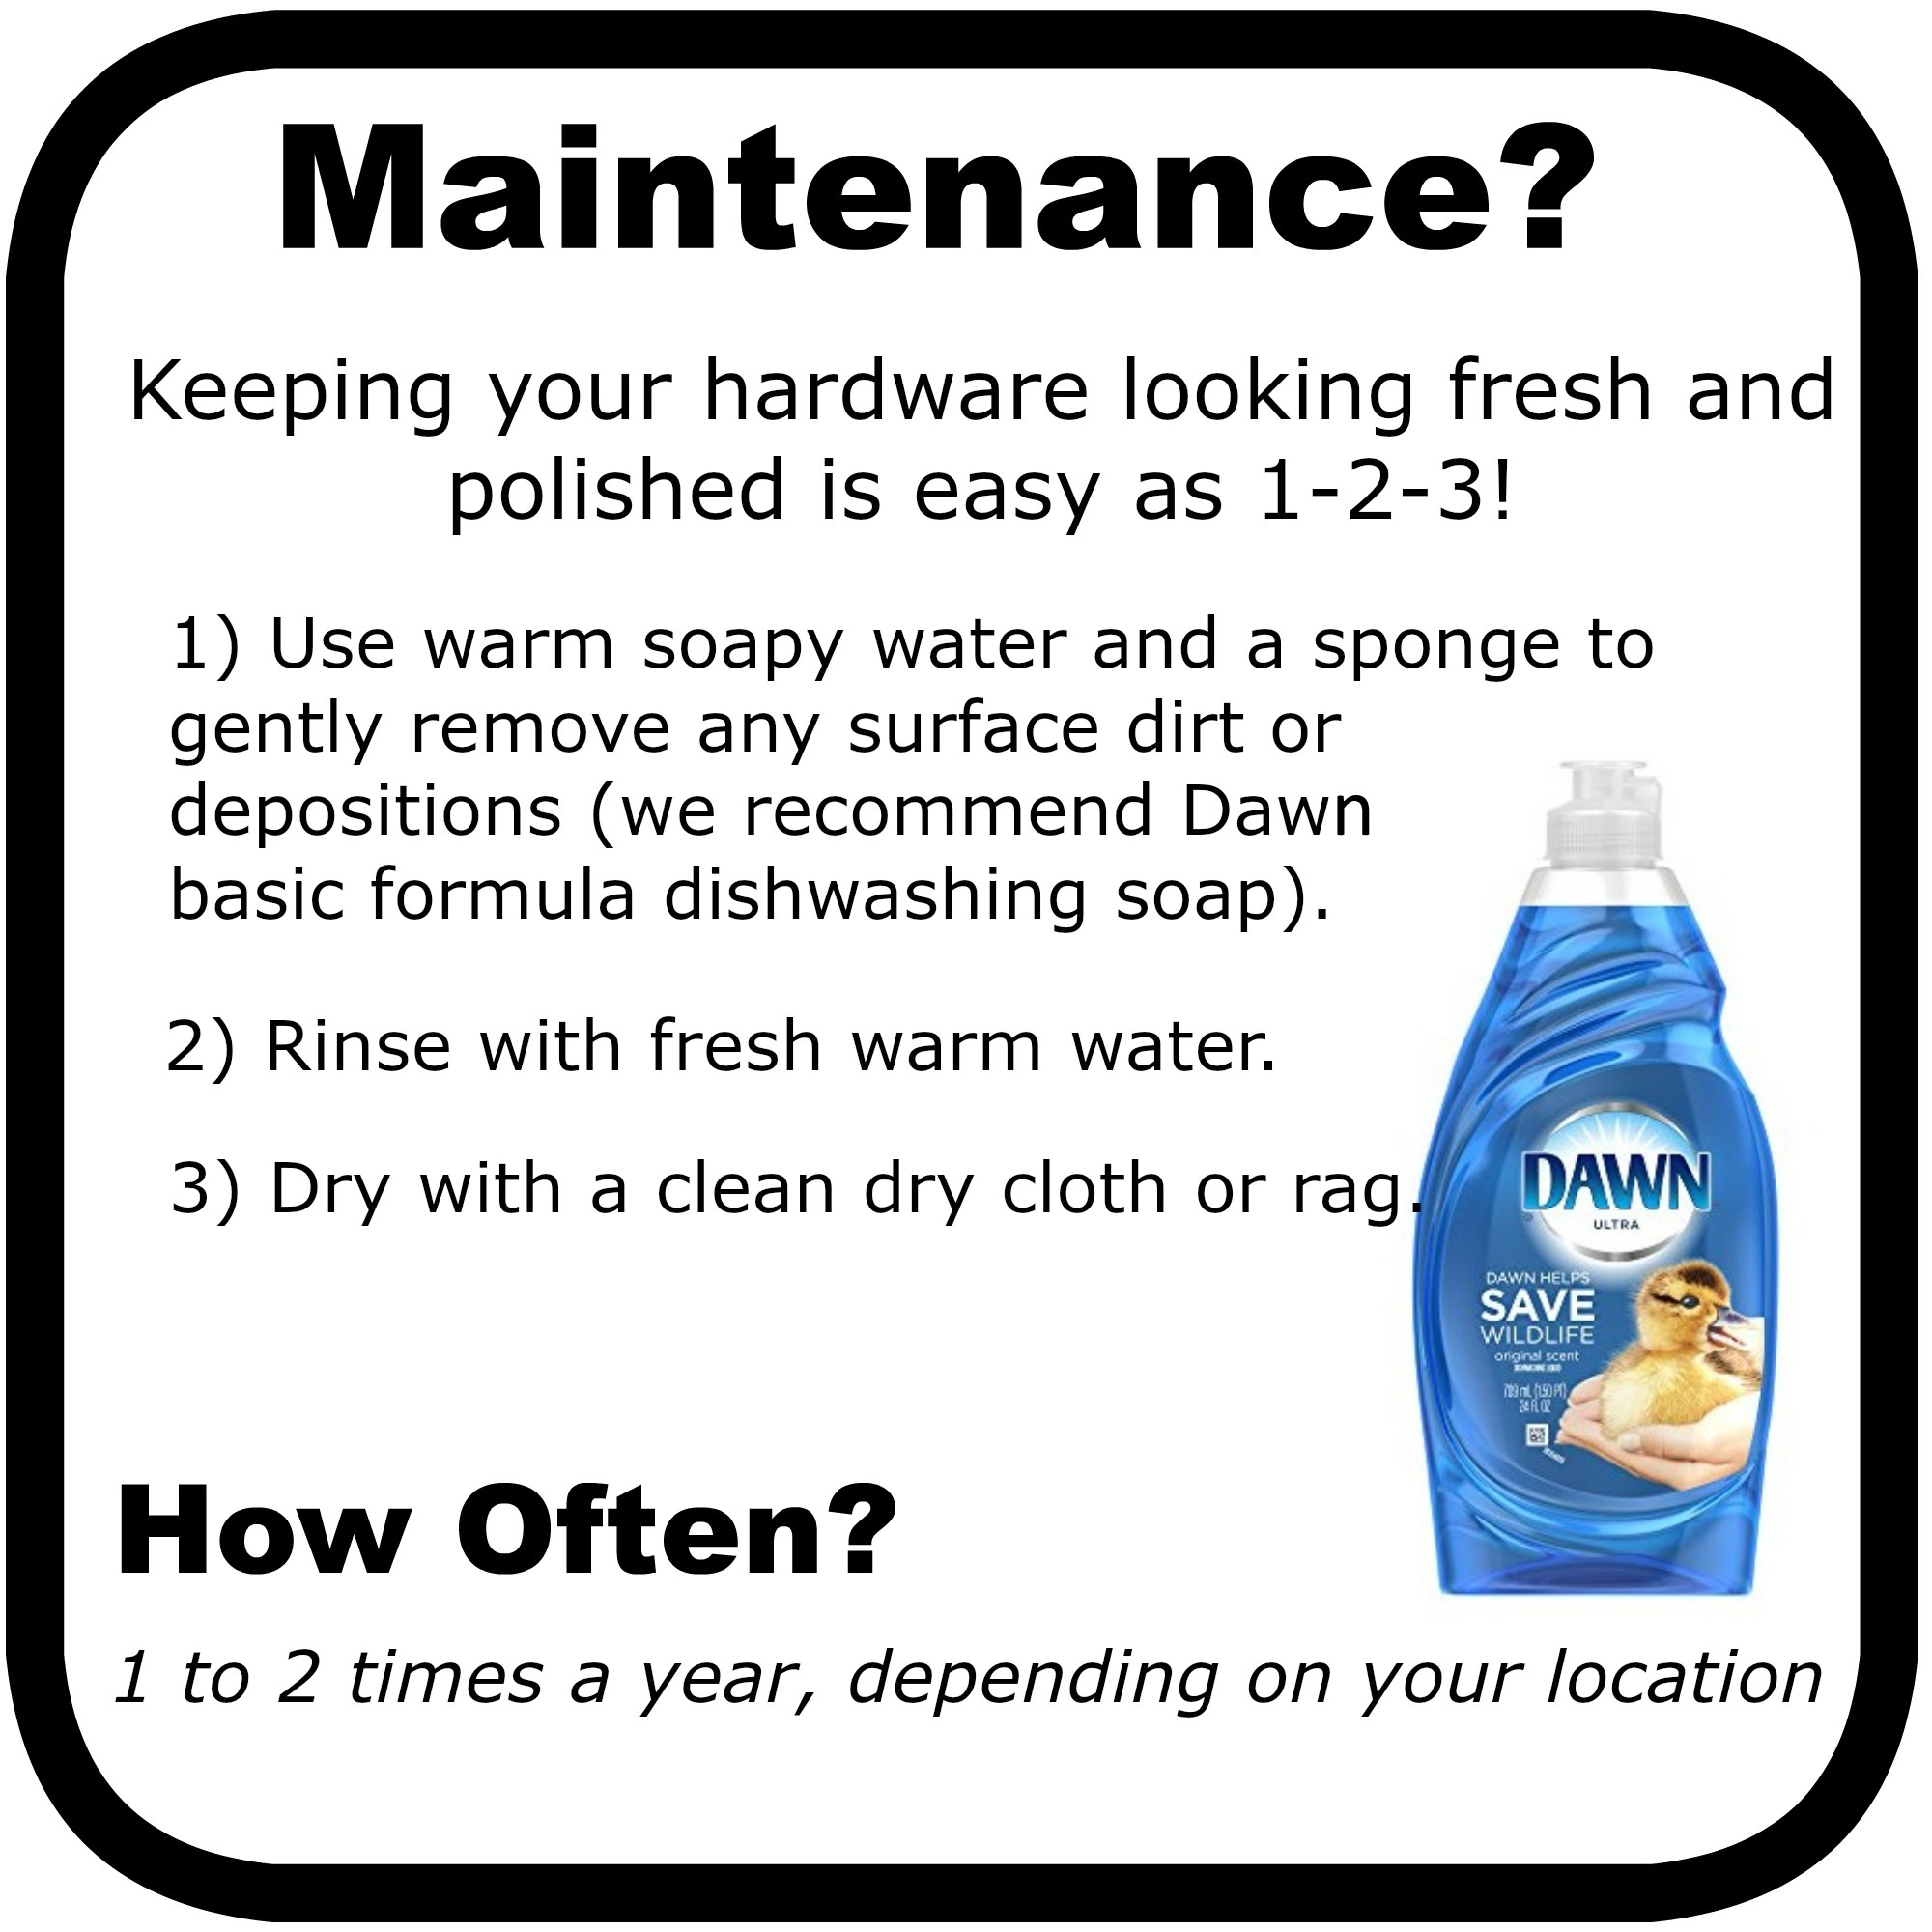 maintenance-instructions.jpg